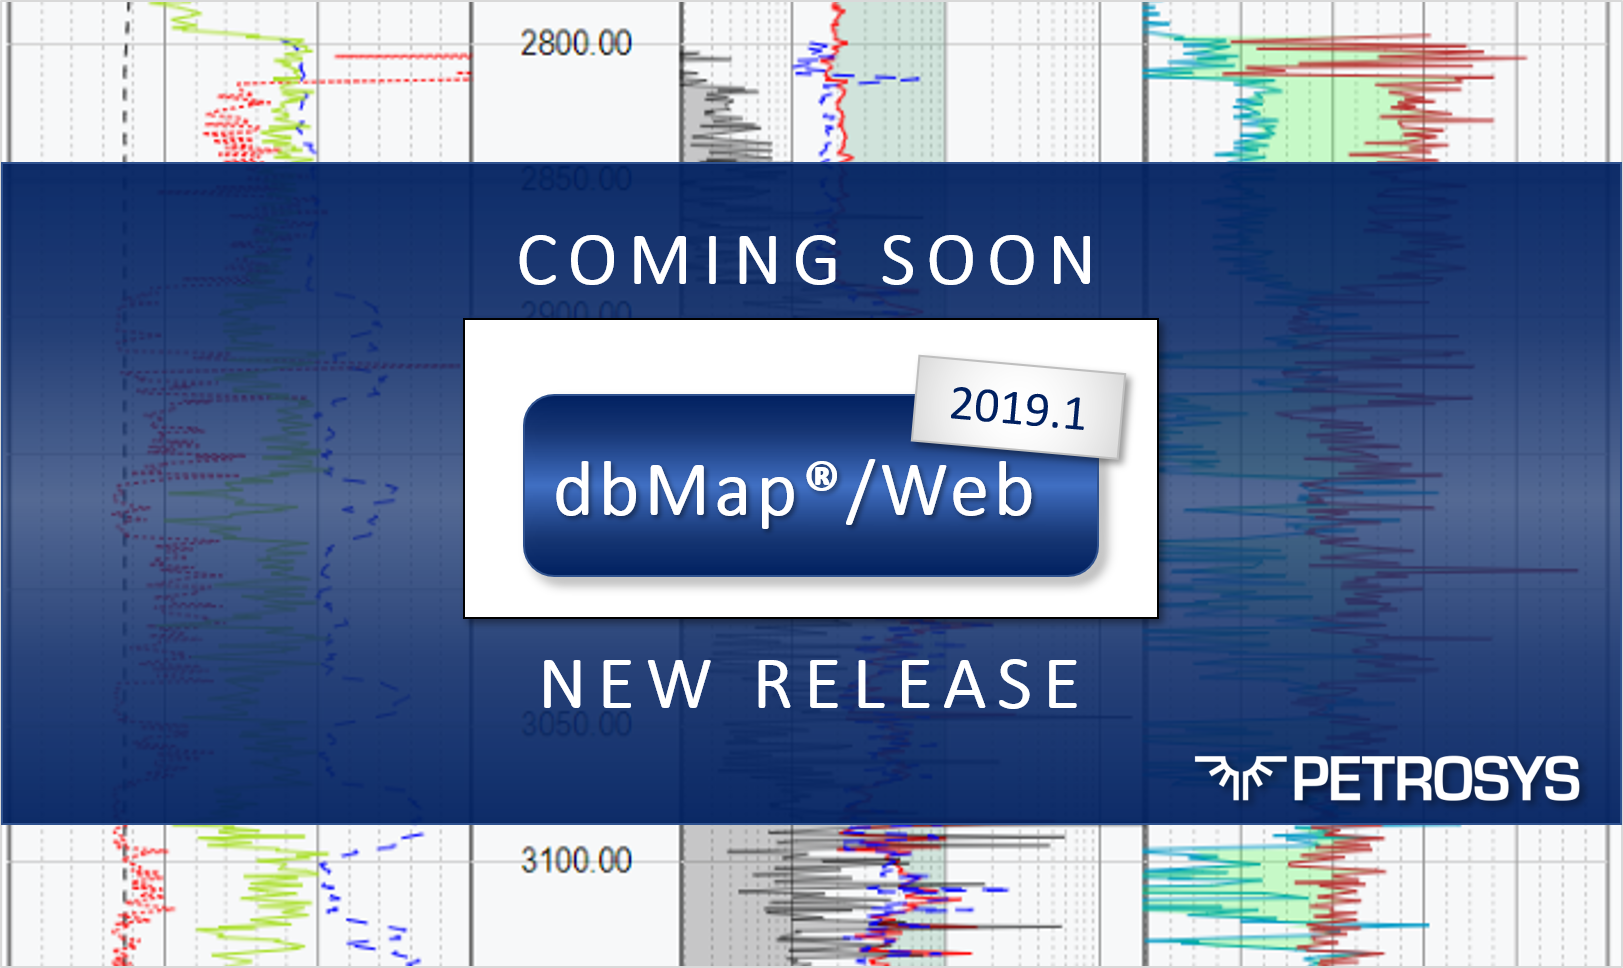 Coming Soon - dbMap®/Web 2019.1